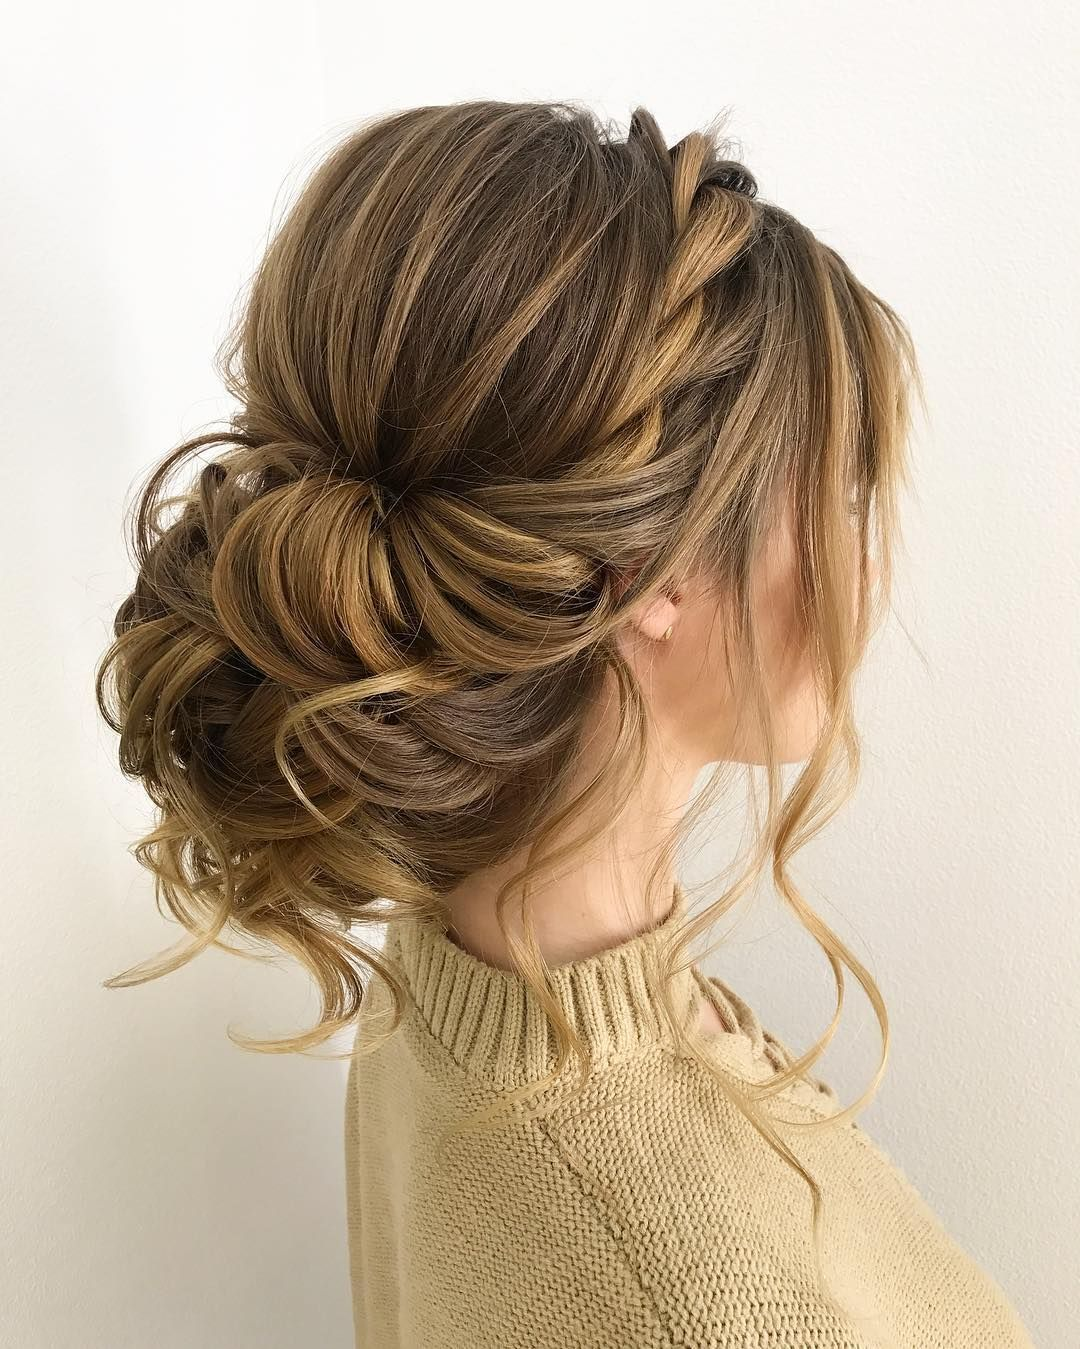 Wedding Hairstyles Braid: Gorgeous Wedding Updo Hairstyles That Will Wow Your Big